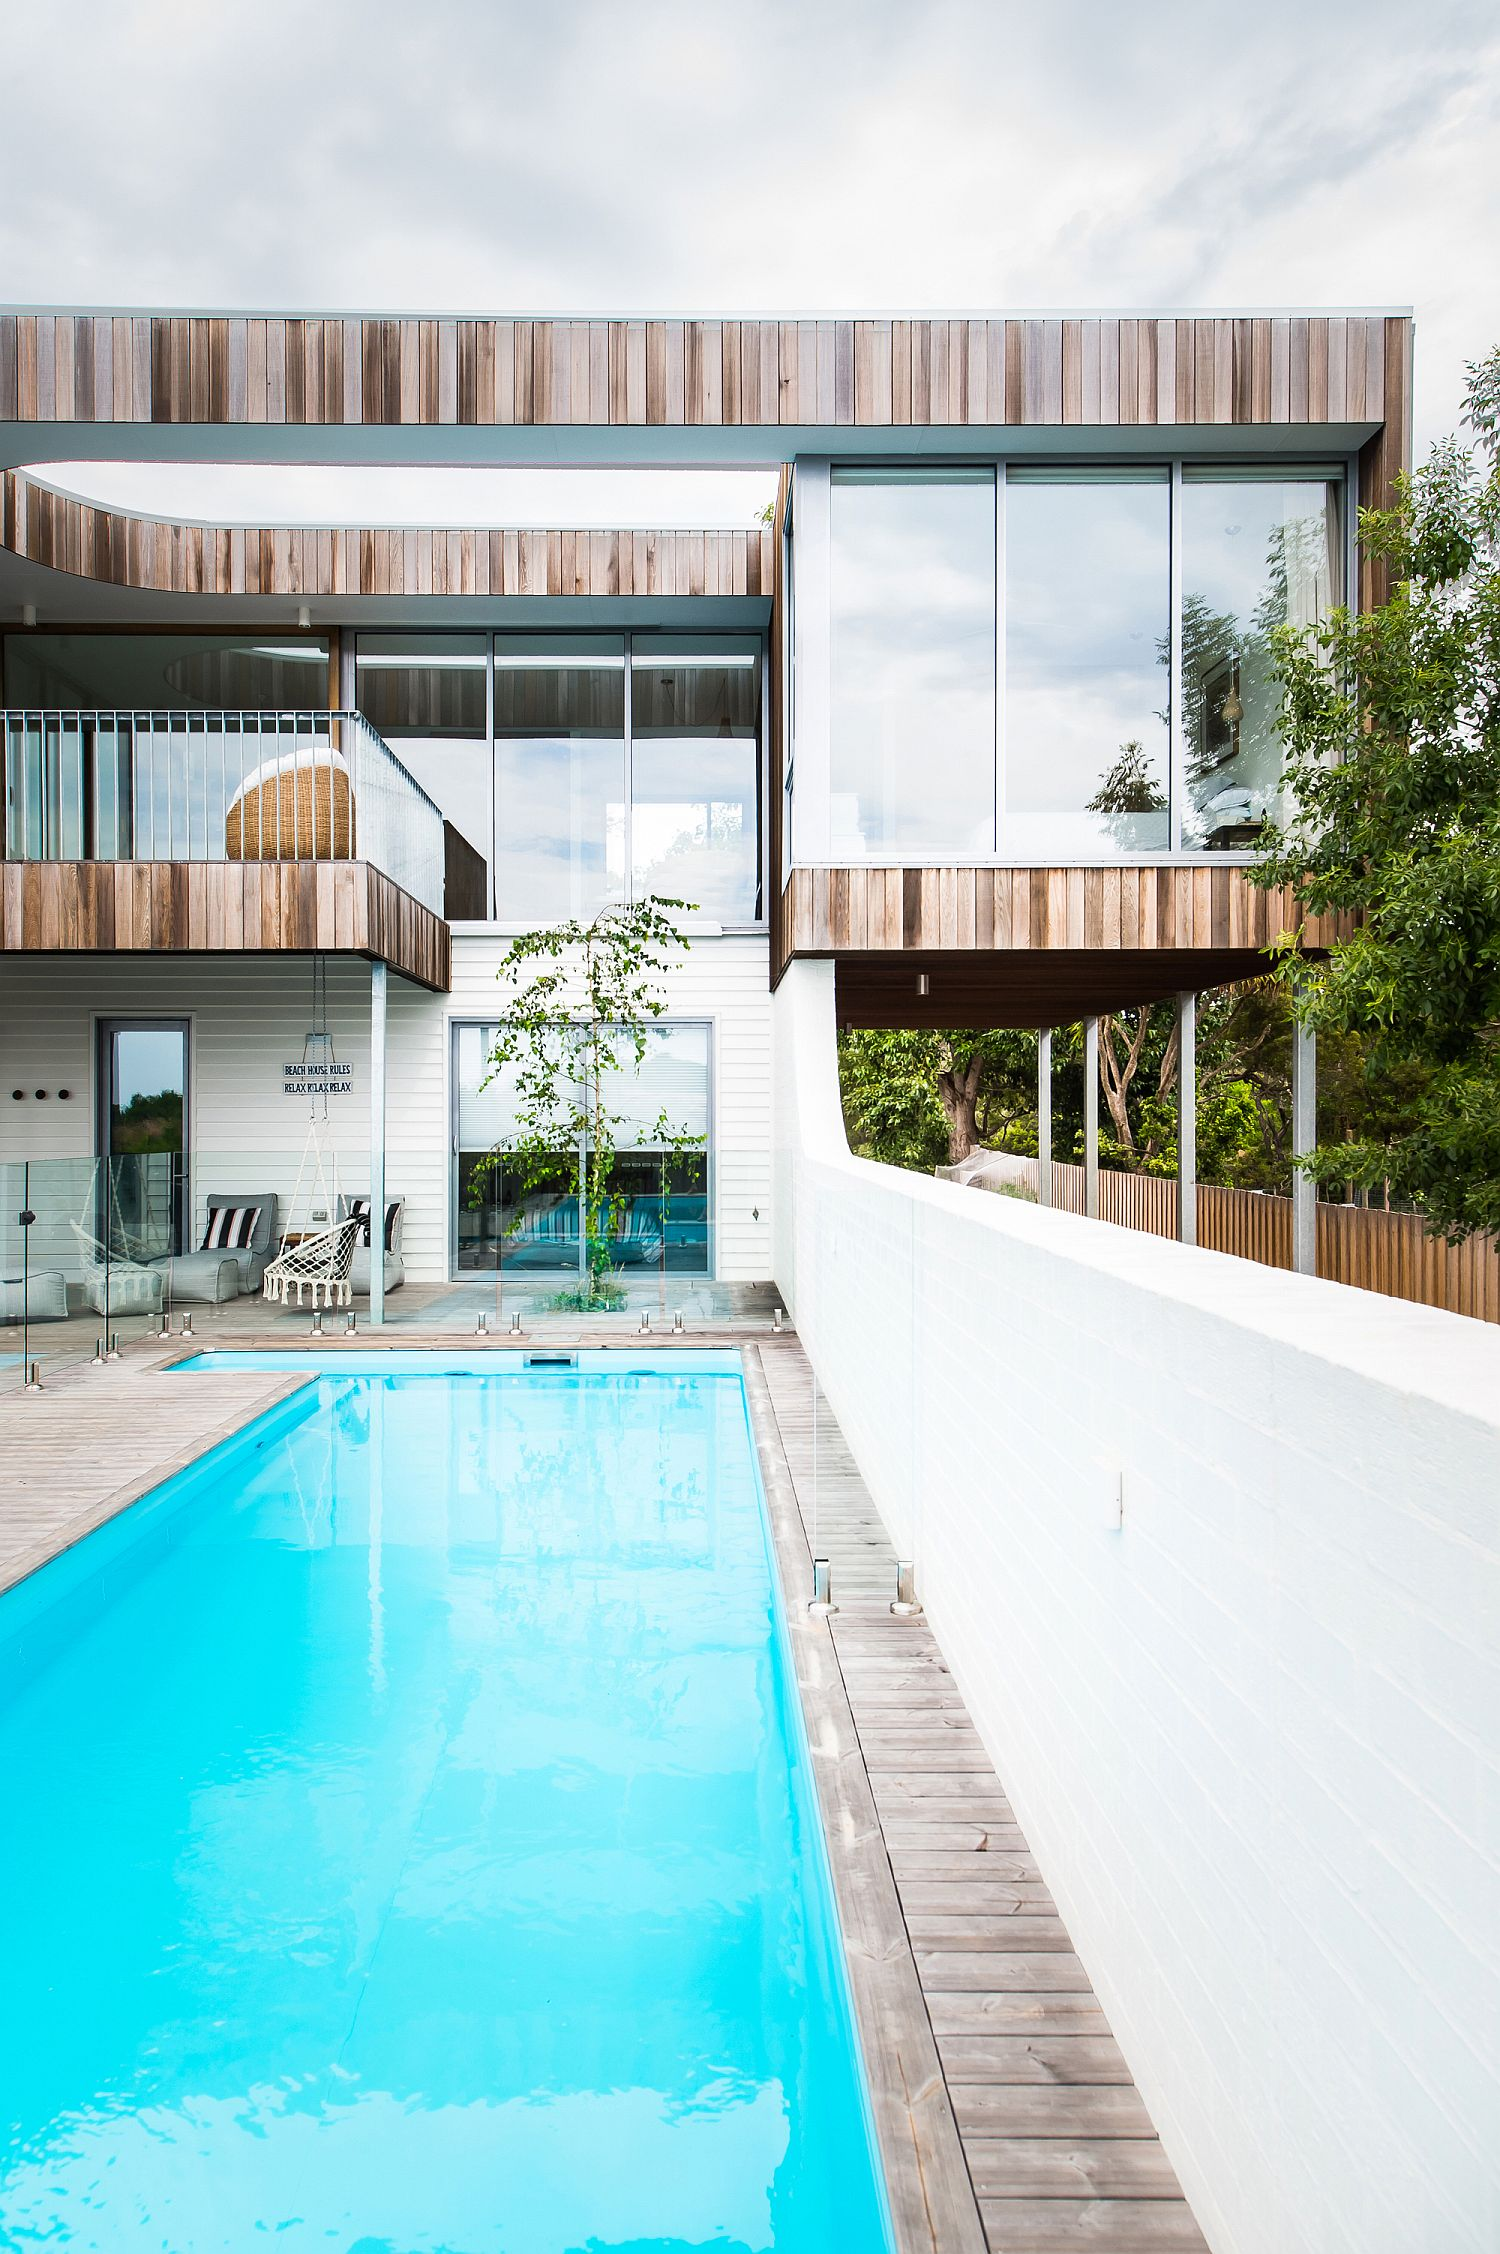 Deck-and-pool-area-of-the-Shearwater-House